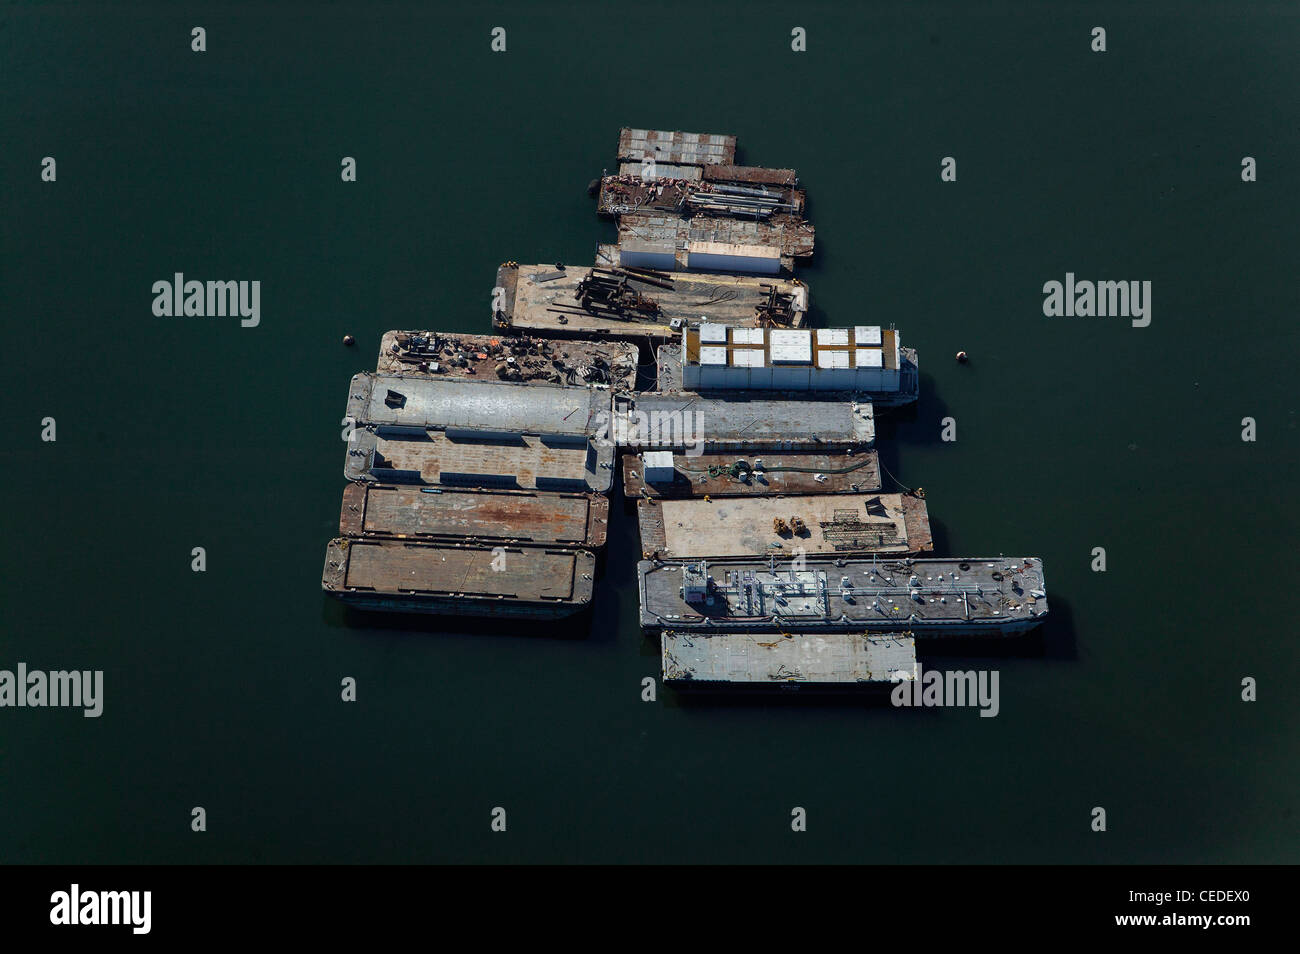 aerial photograph anchored barges San Diego bay, California - Stock Image